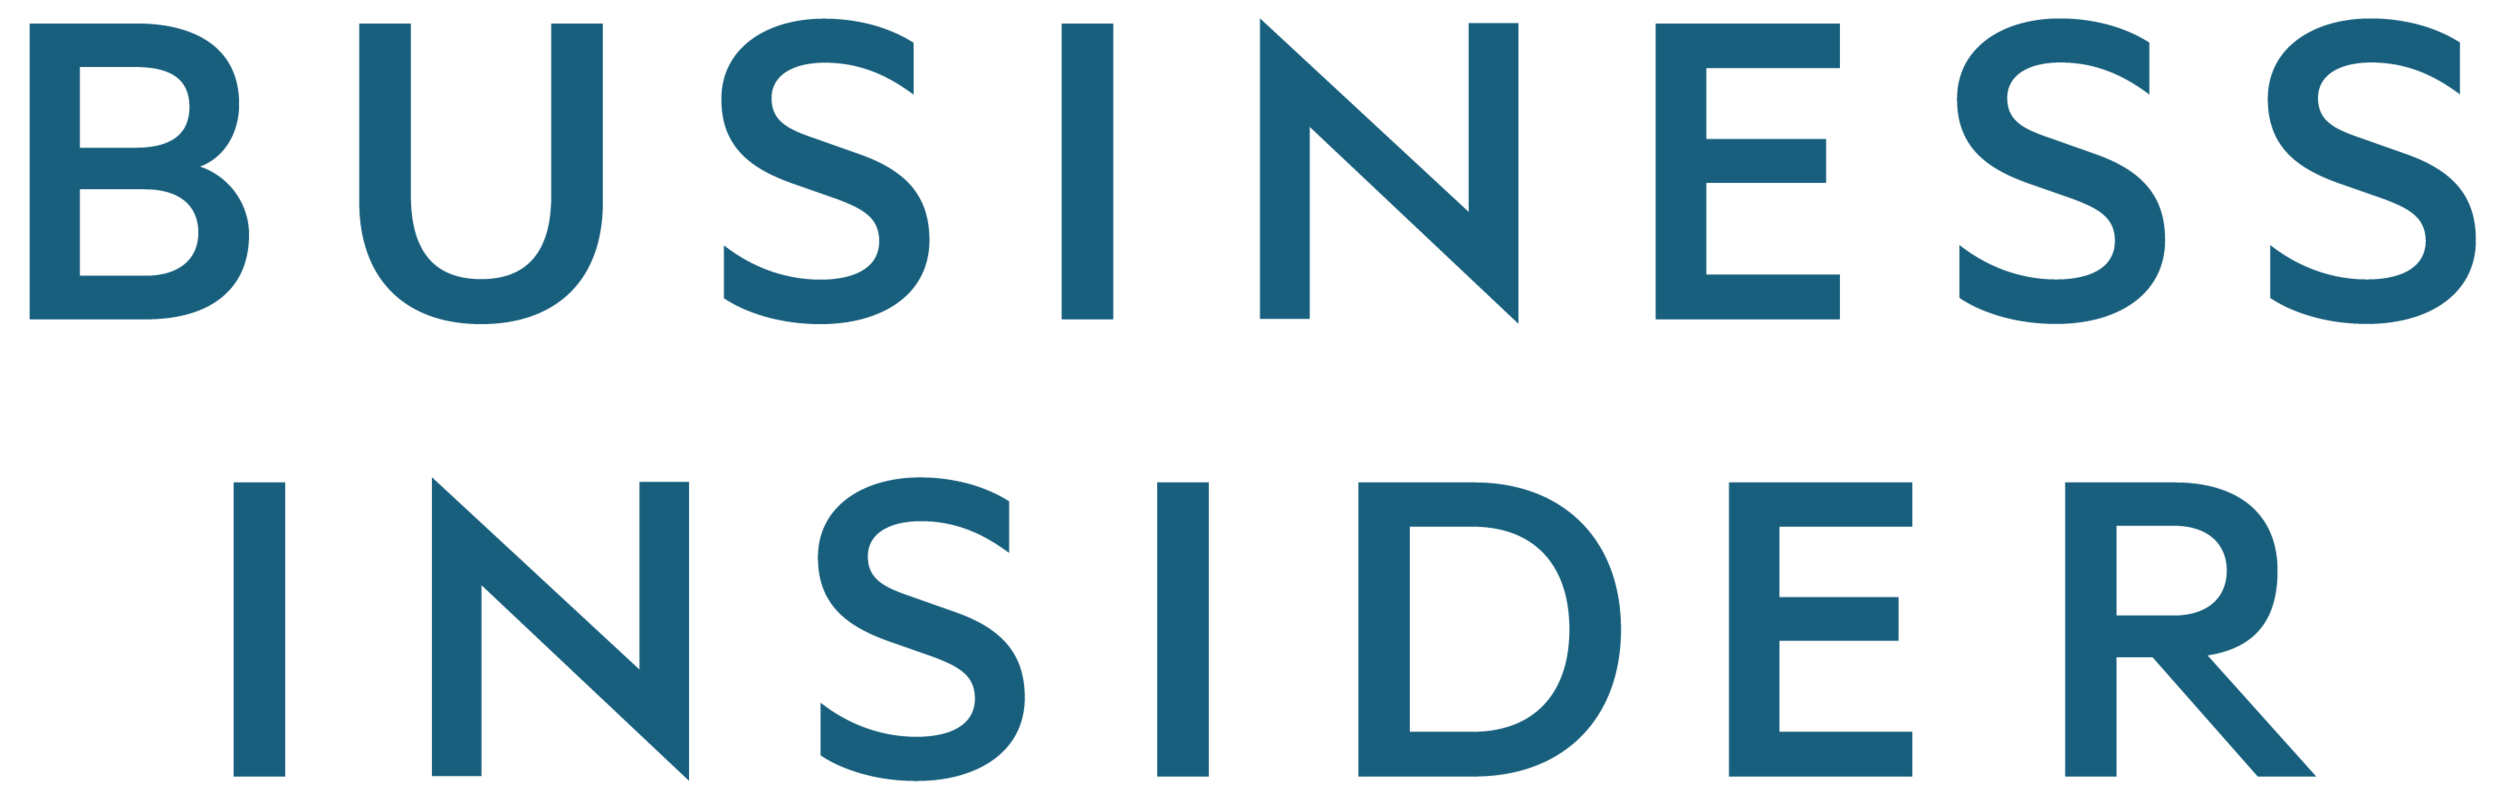 business-insider-logo-png-3.png